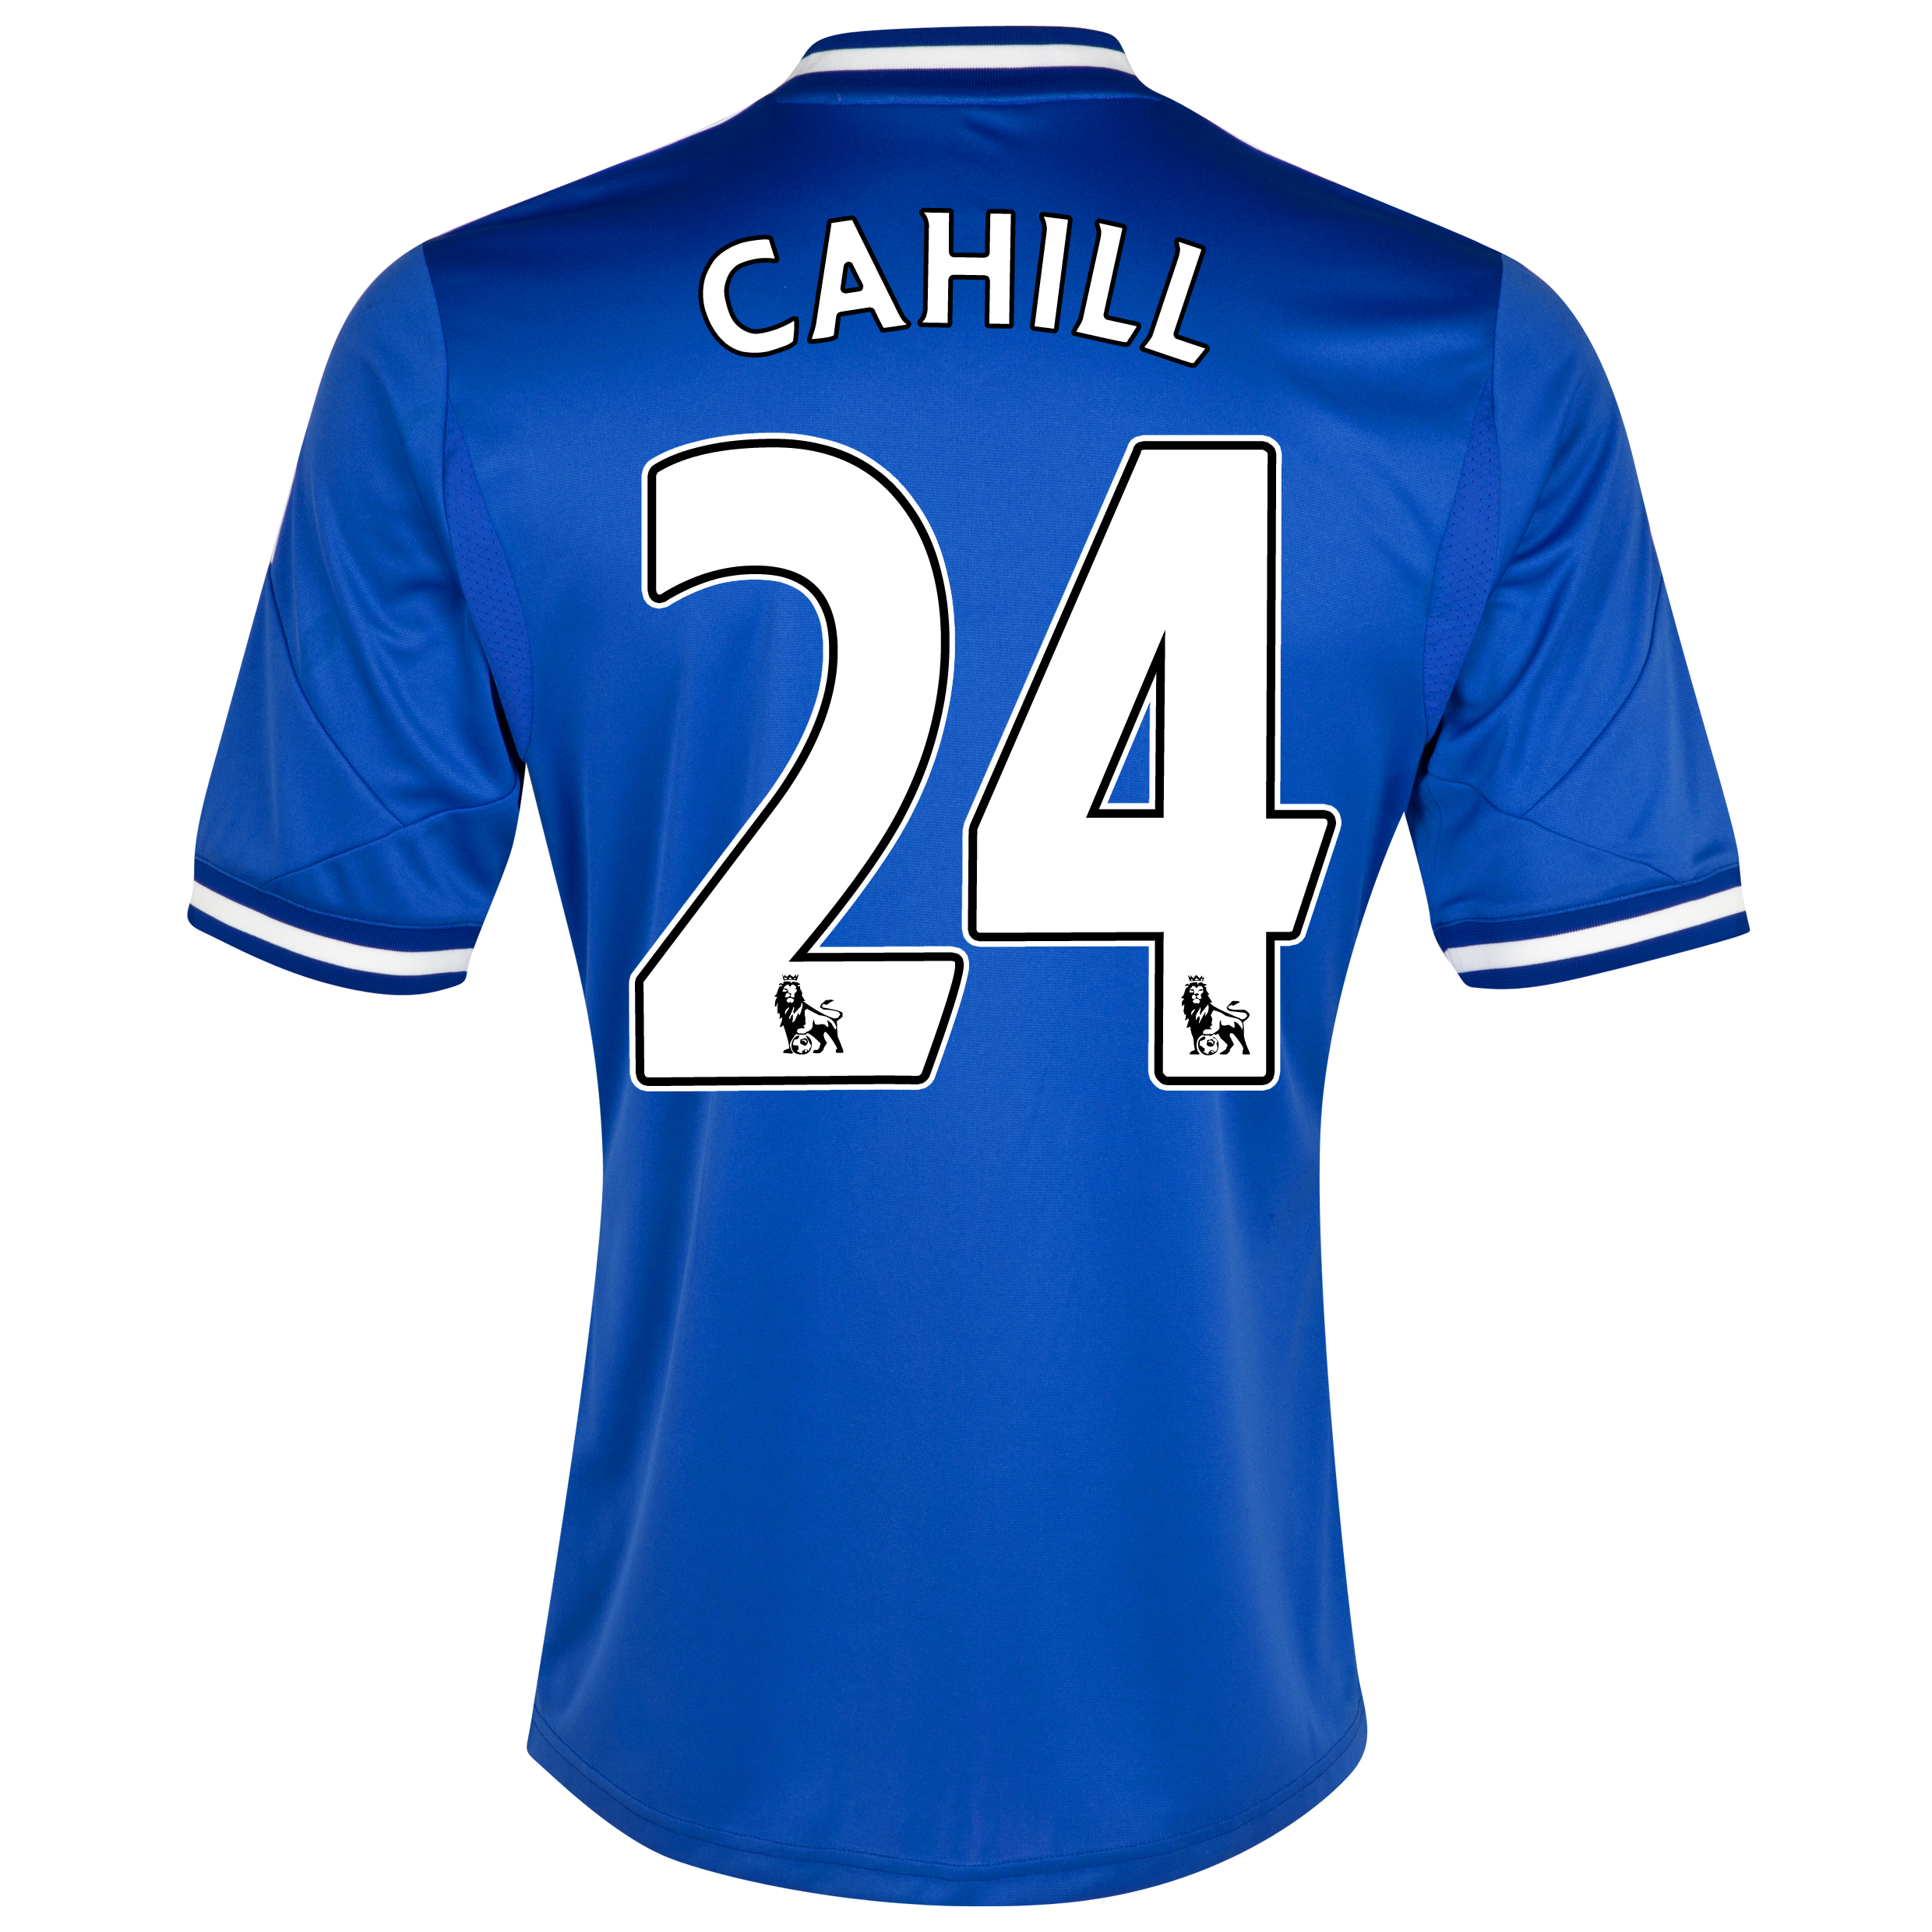 Chelsea Home Shirt 2013/14 with Cahill 24 printing